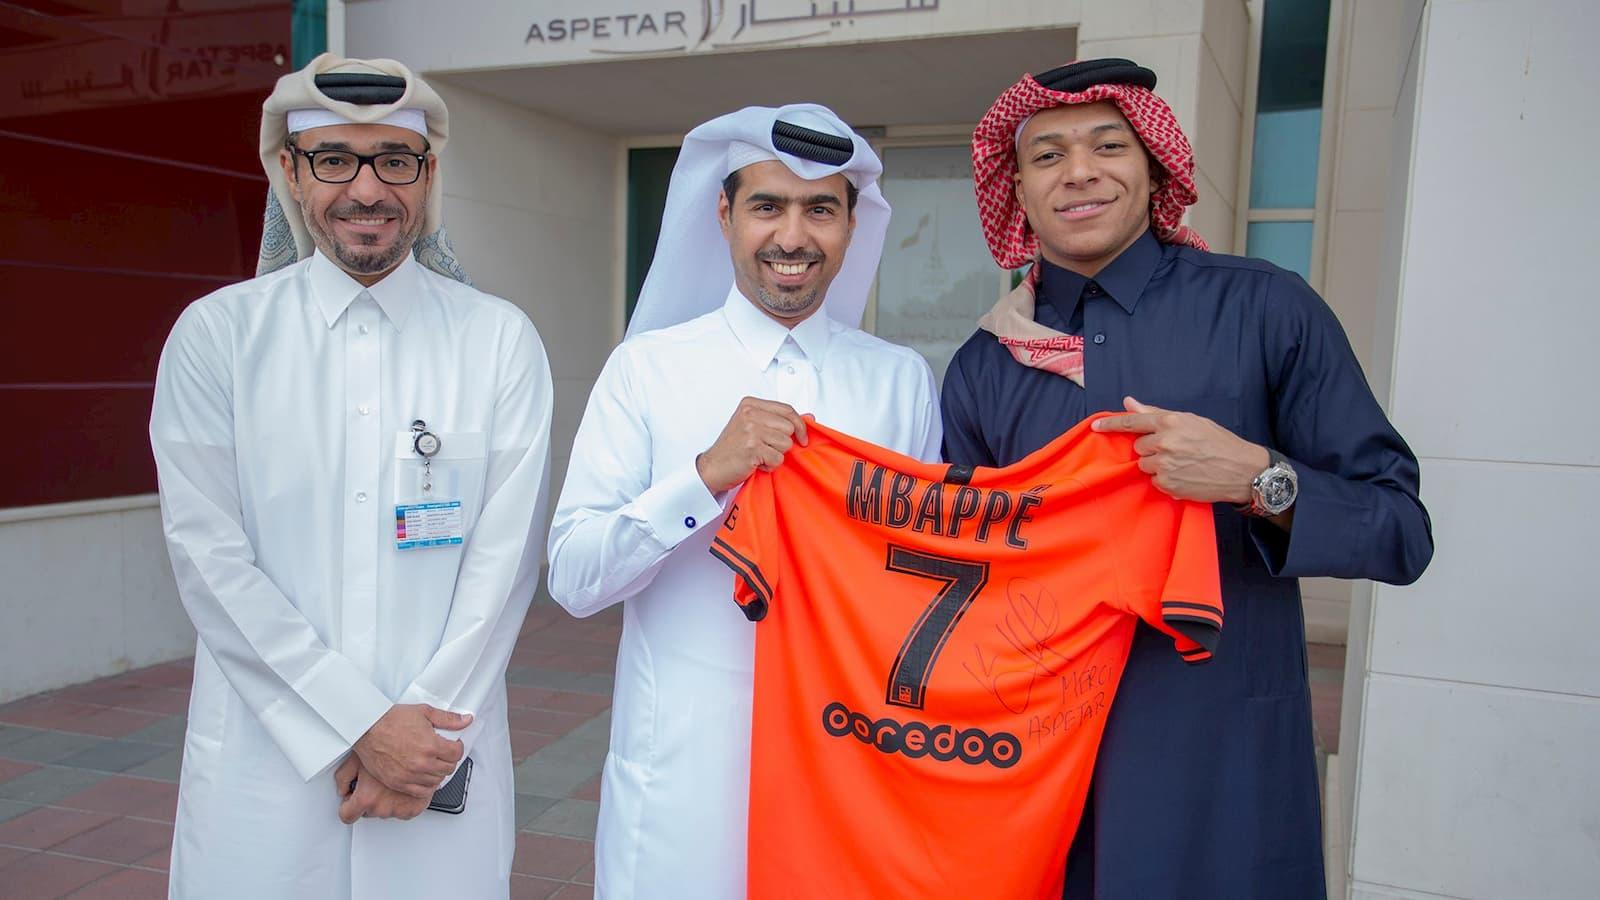 Mbappe arrives in Aspetar for sports recovery program